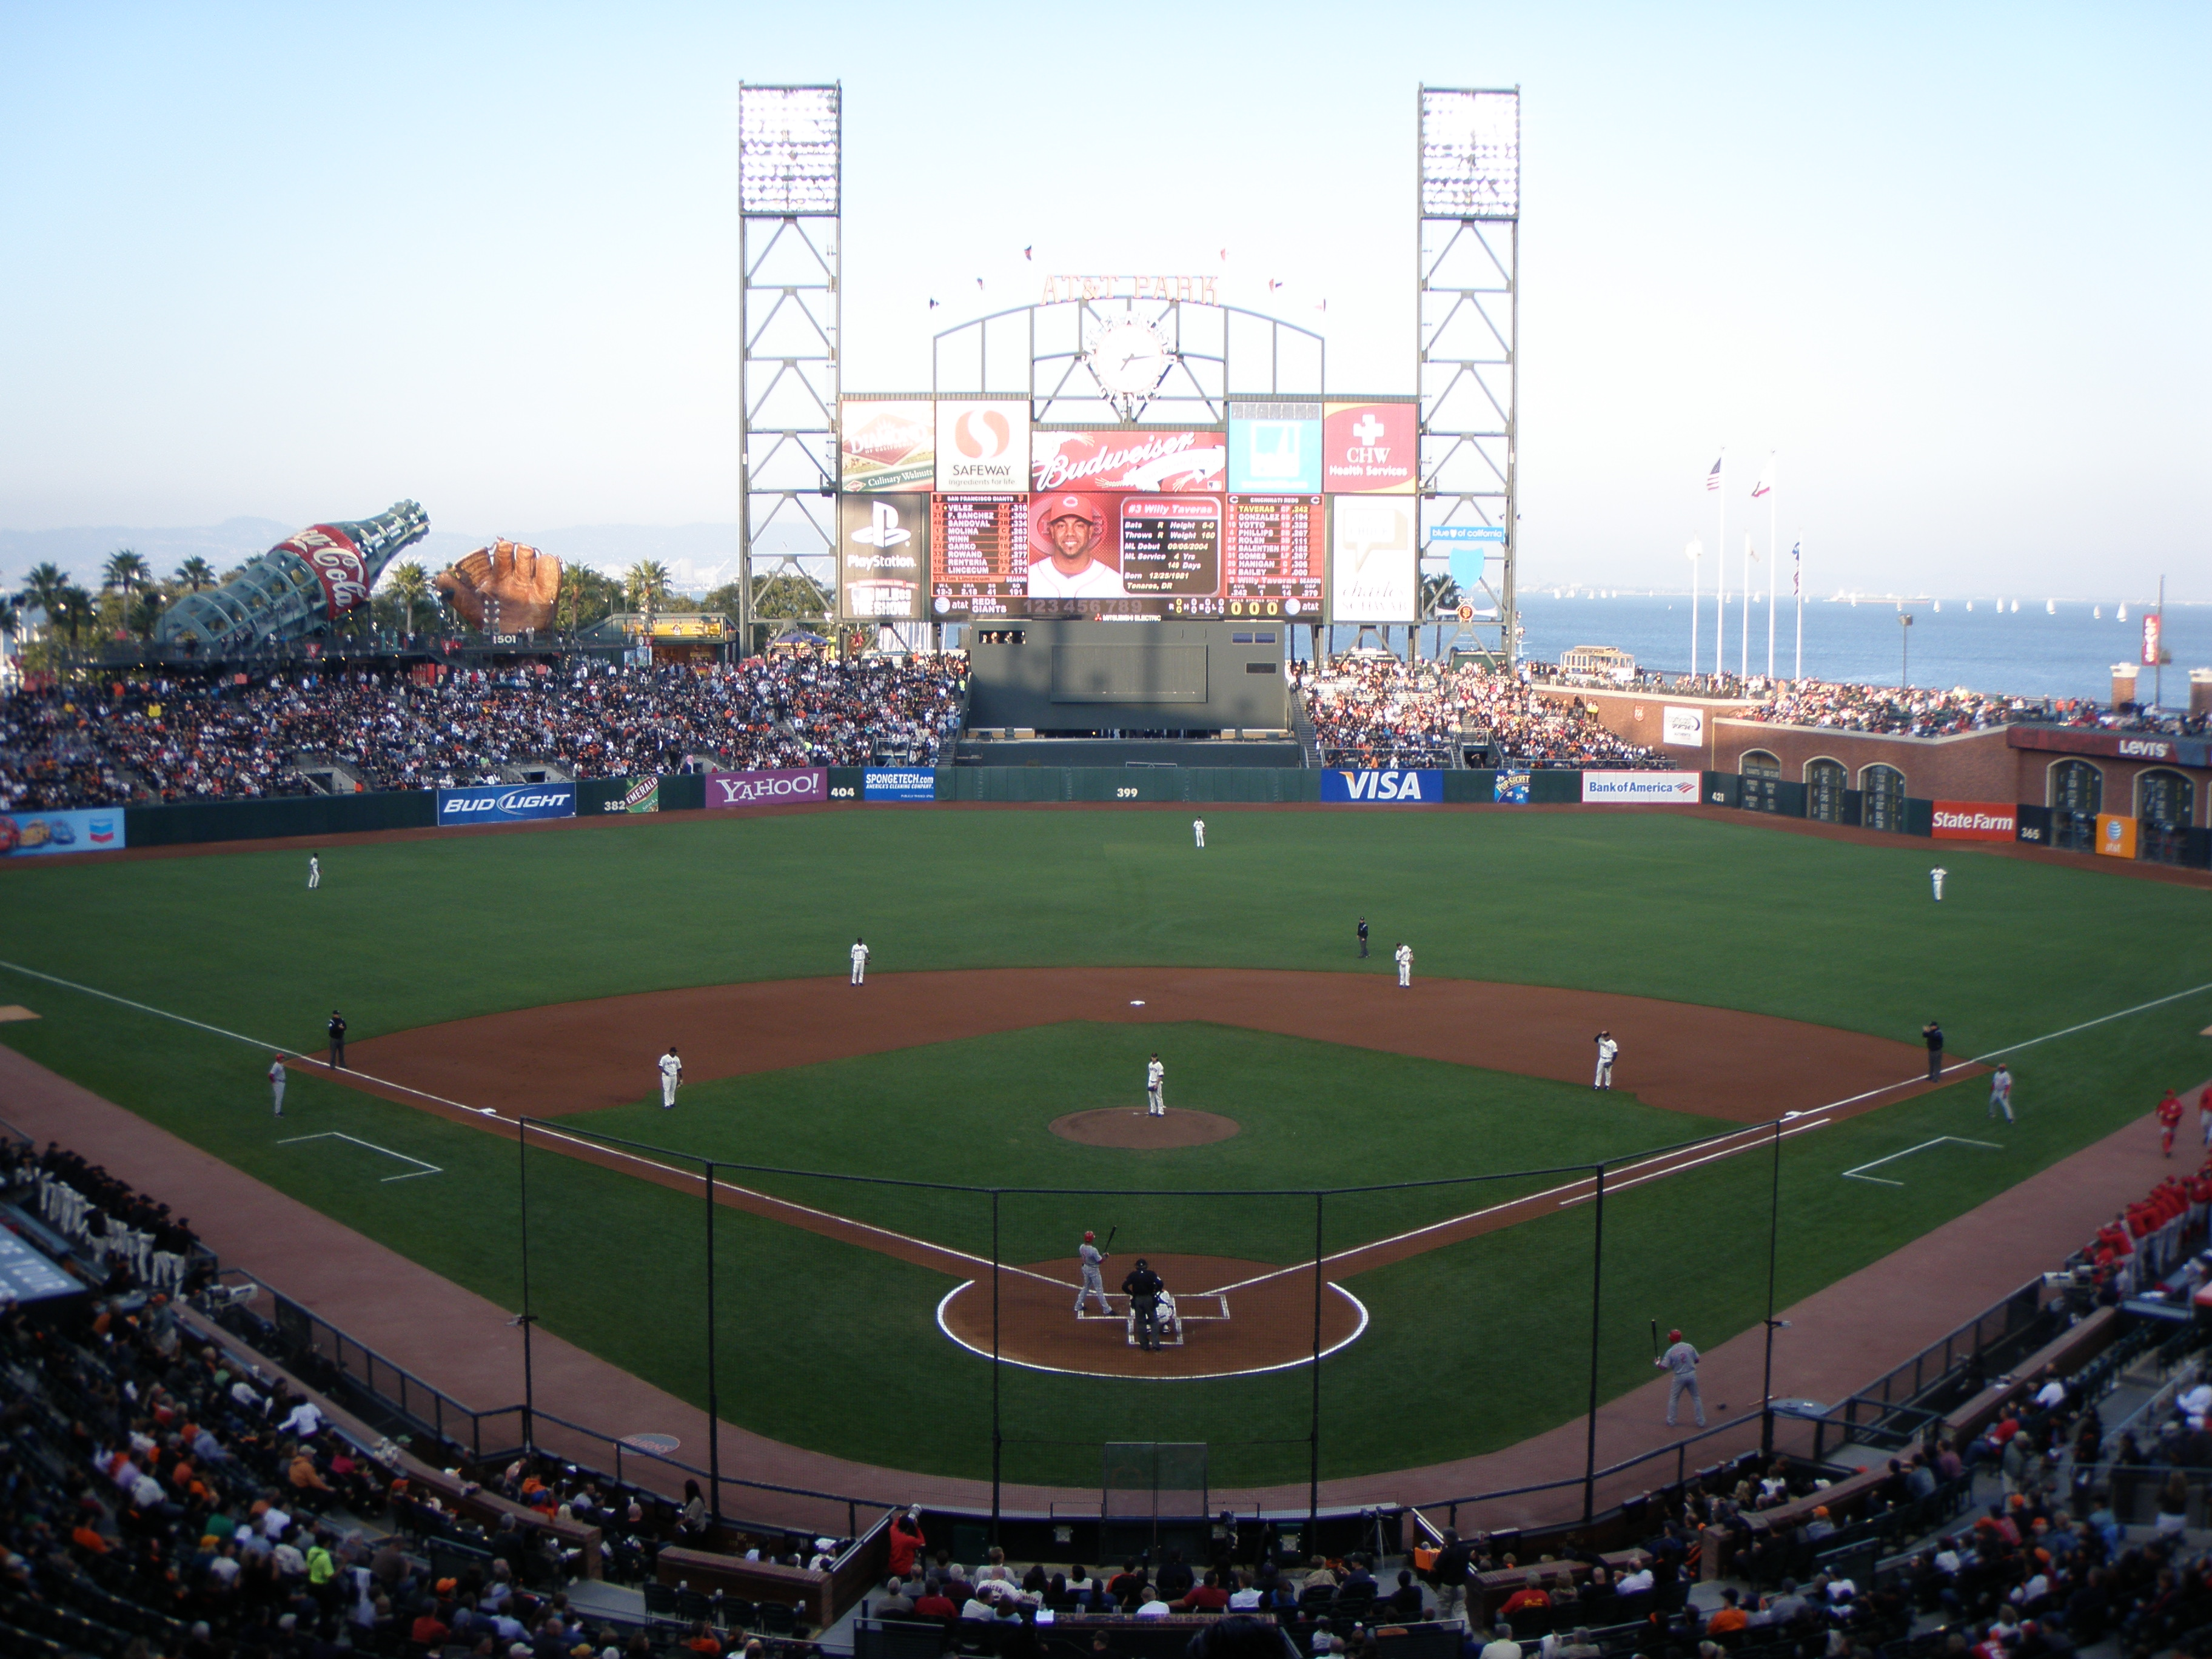 Tickets at TickPick for CLub Level at AT&T Park